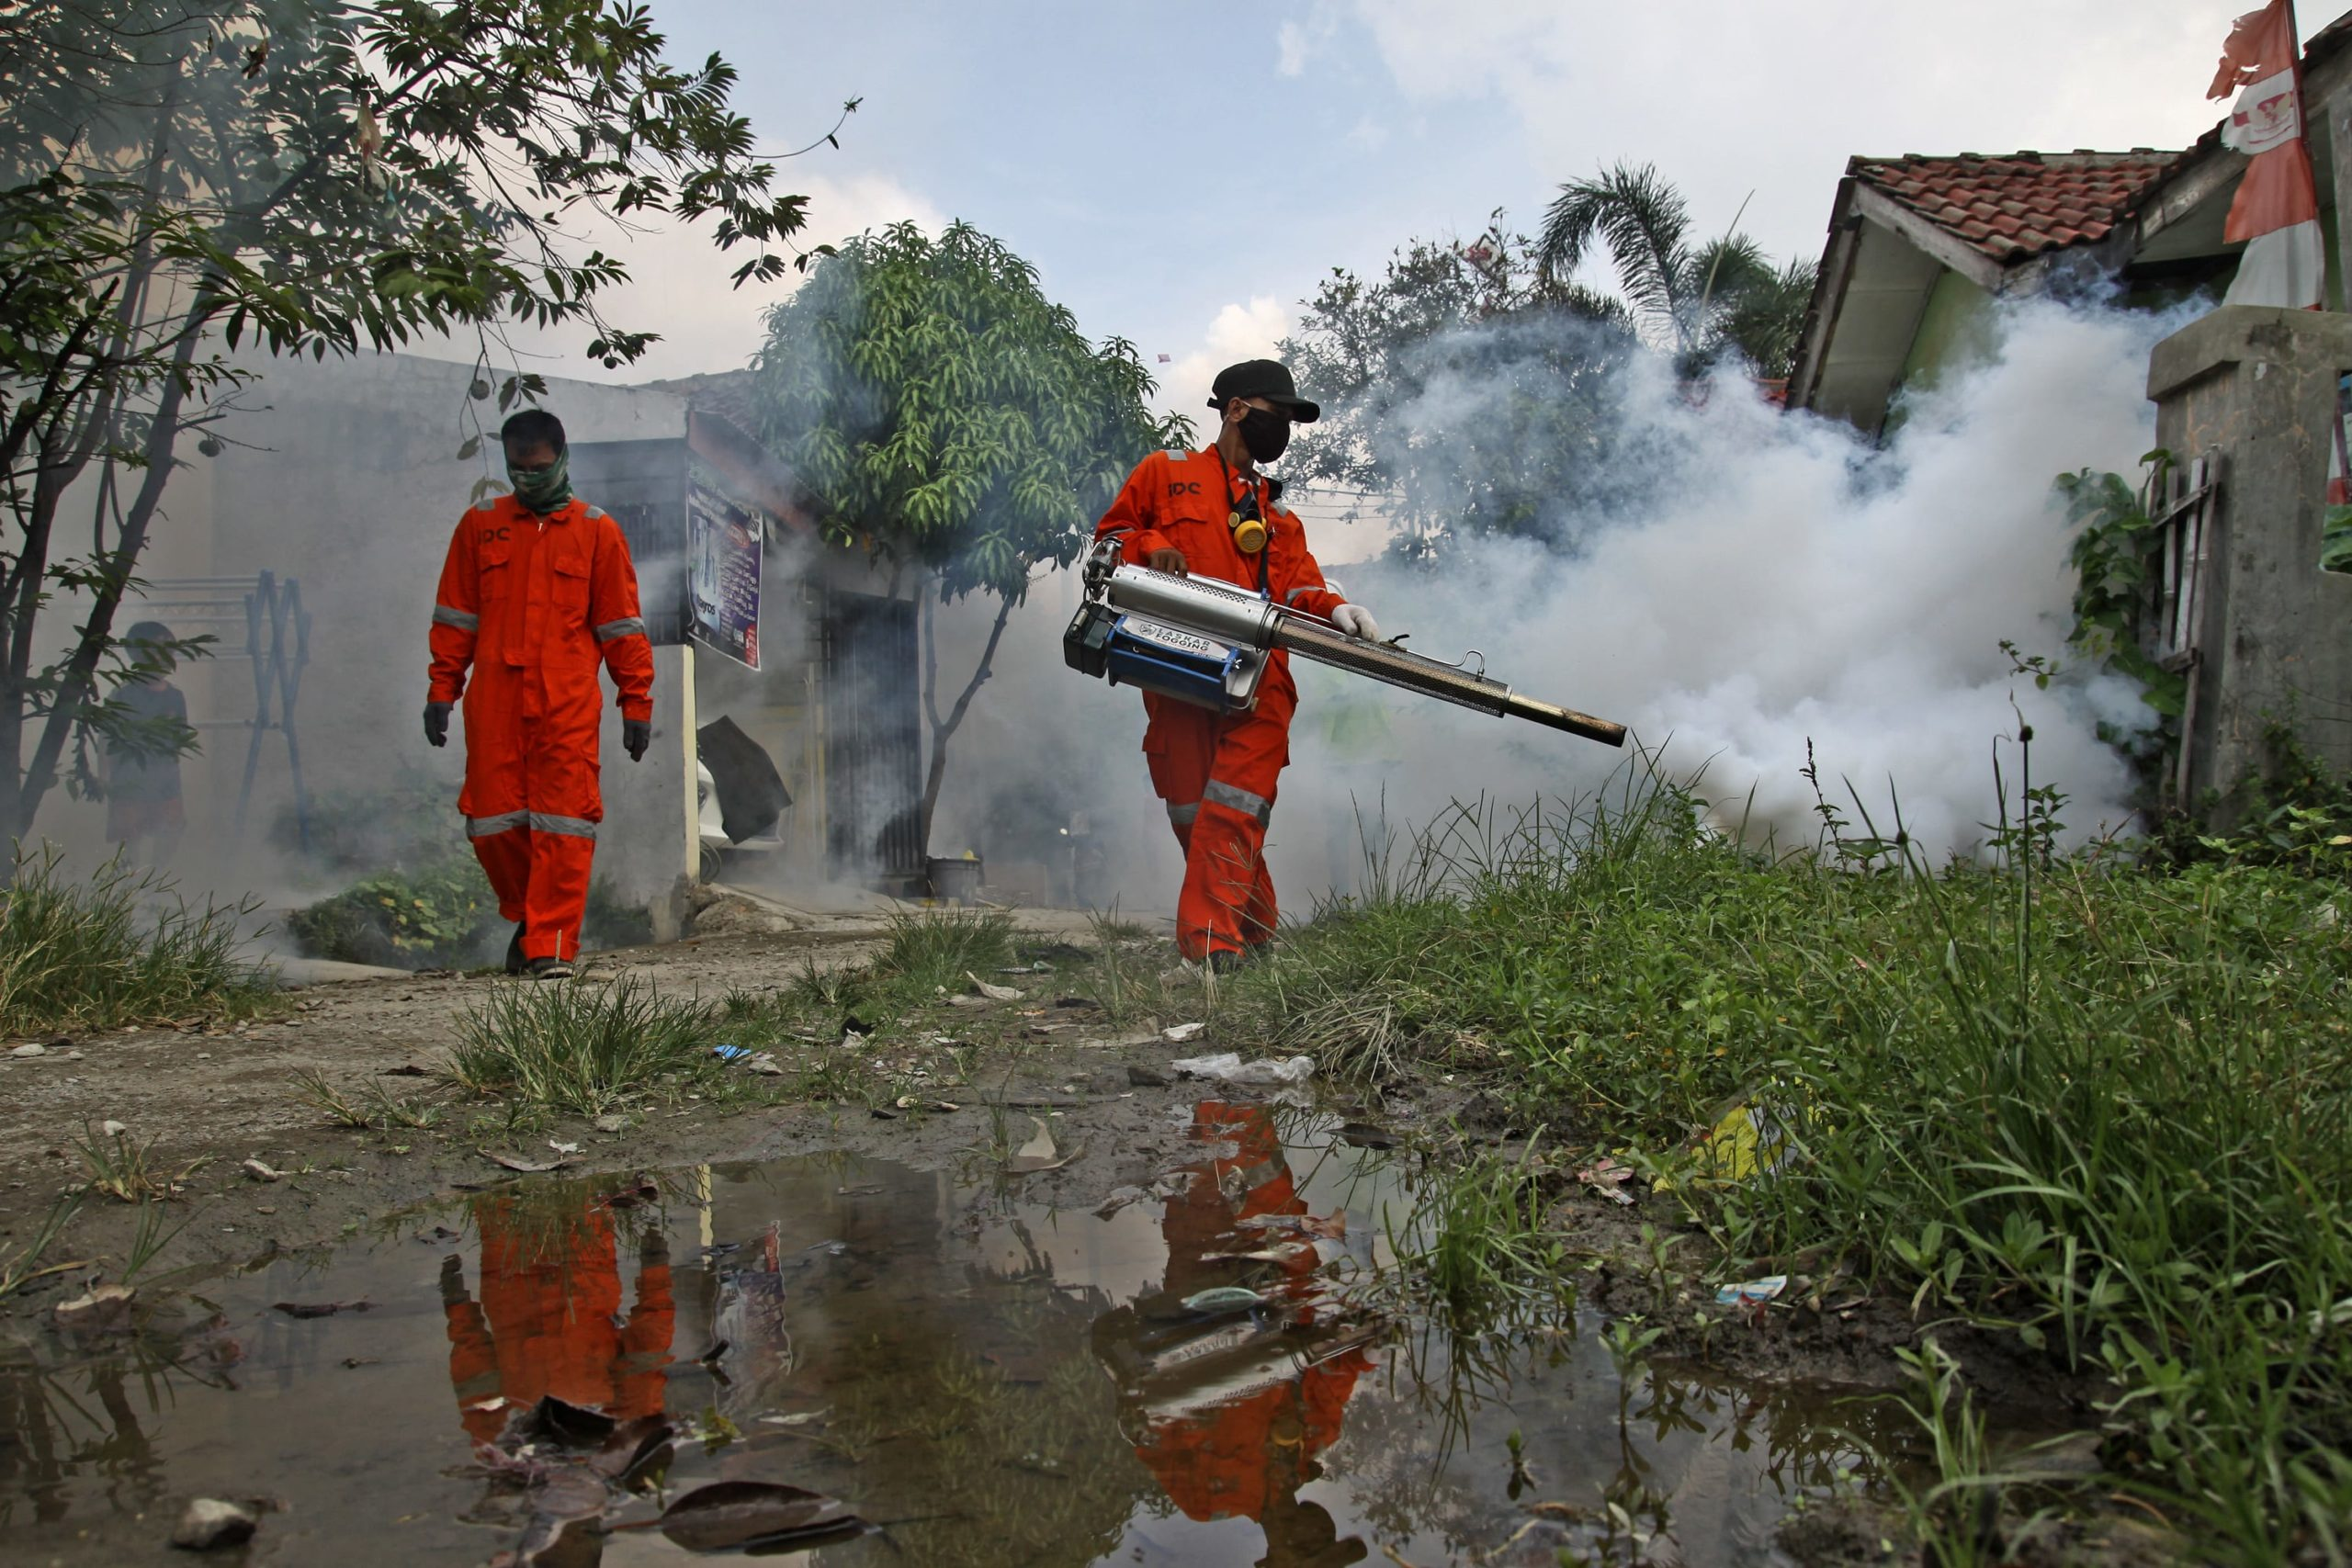 Outbreak of dengue fever in Southeast Asia is 'exploding' amid the coronavirus battle